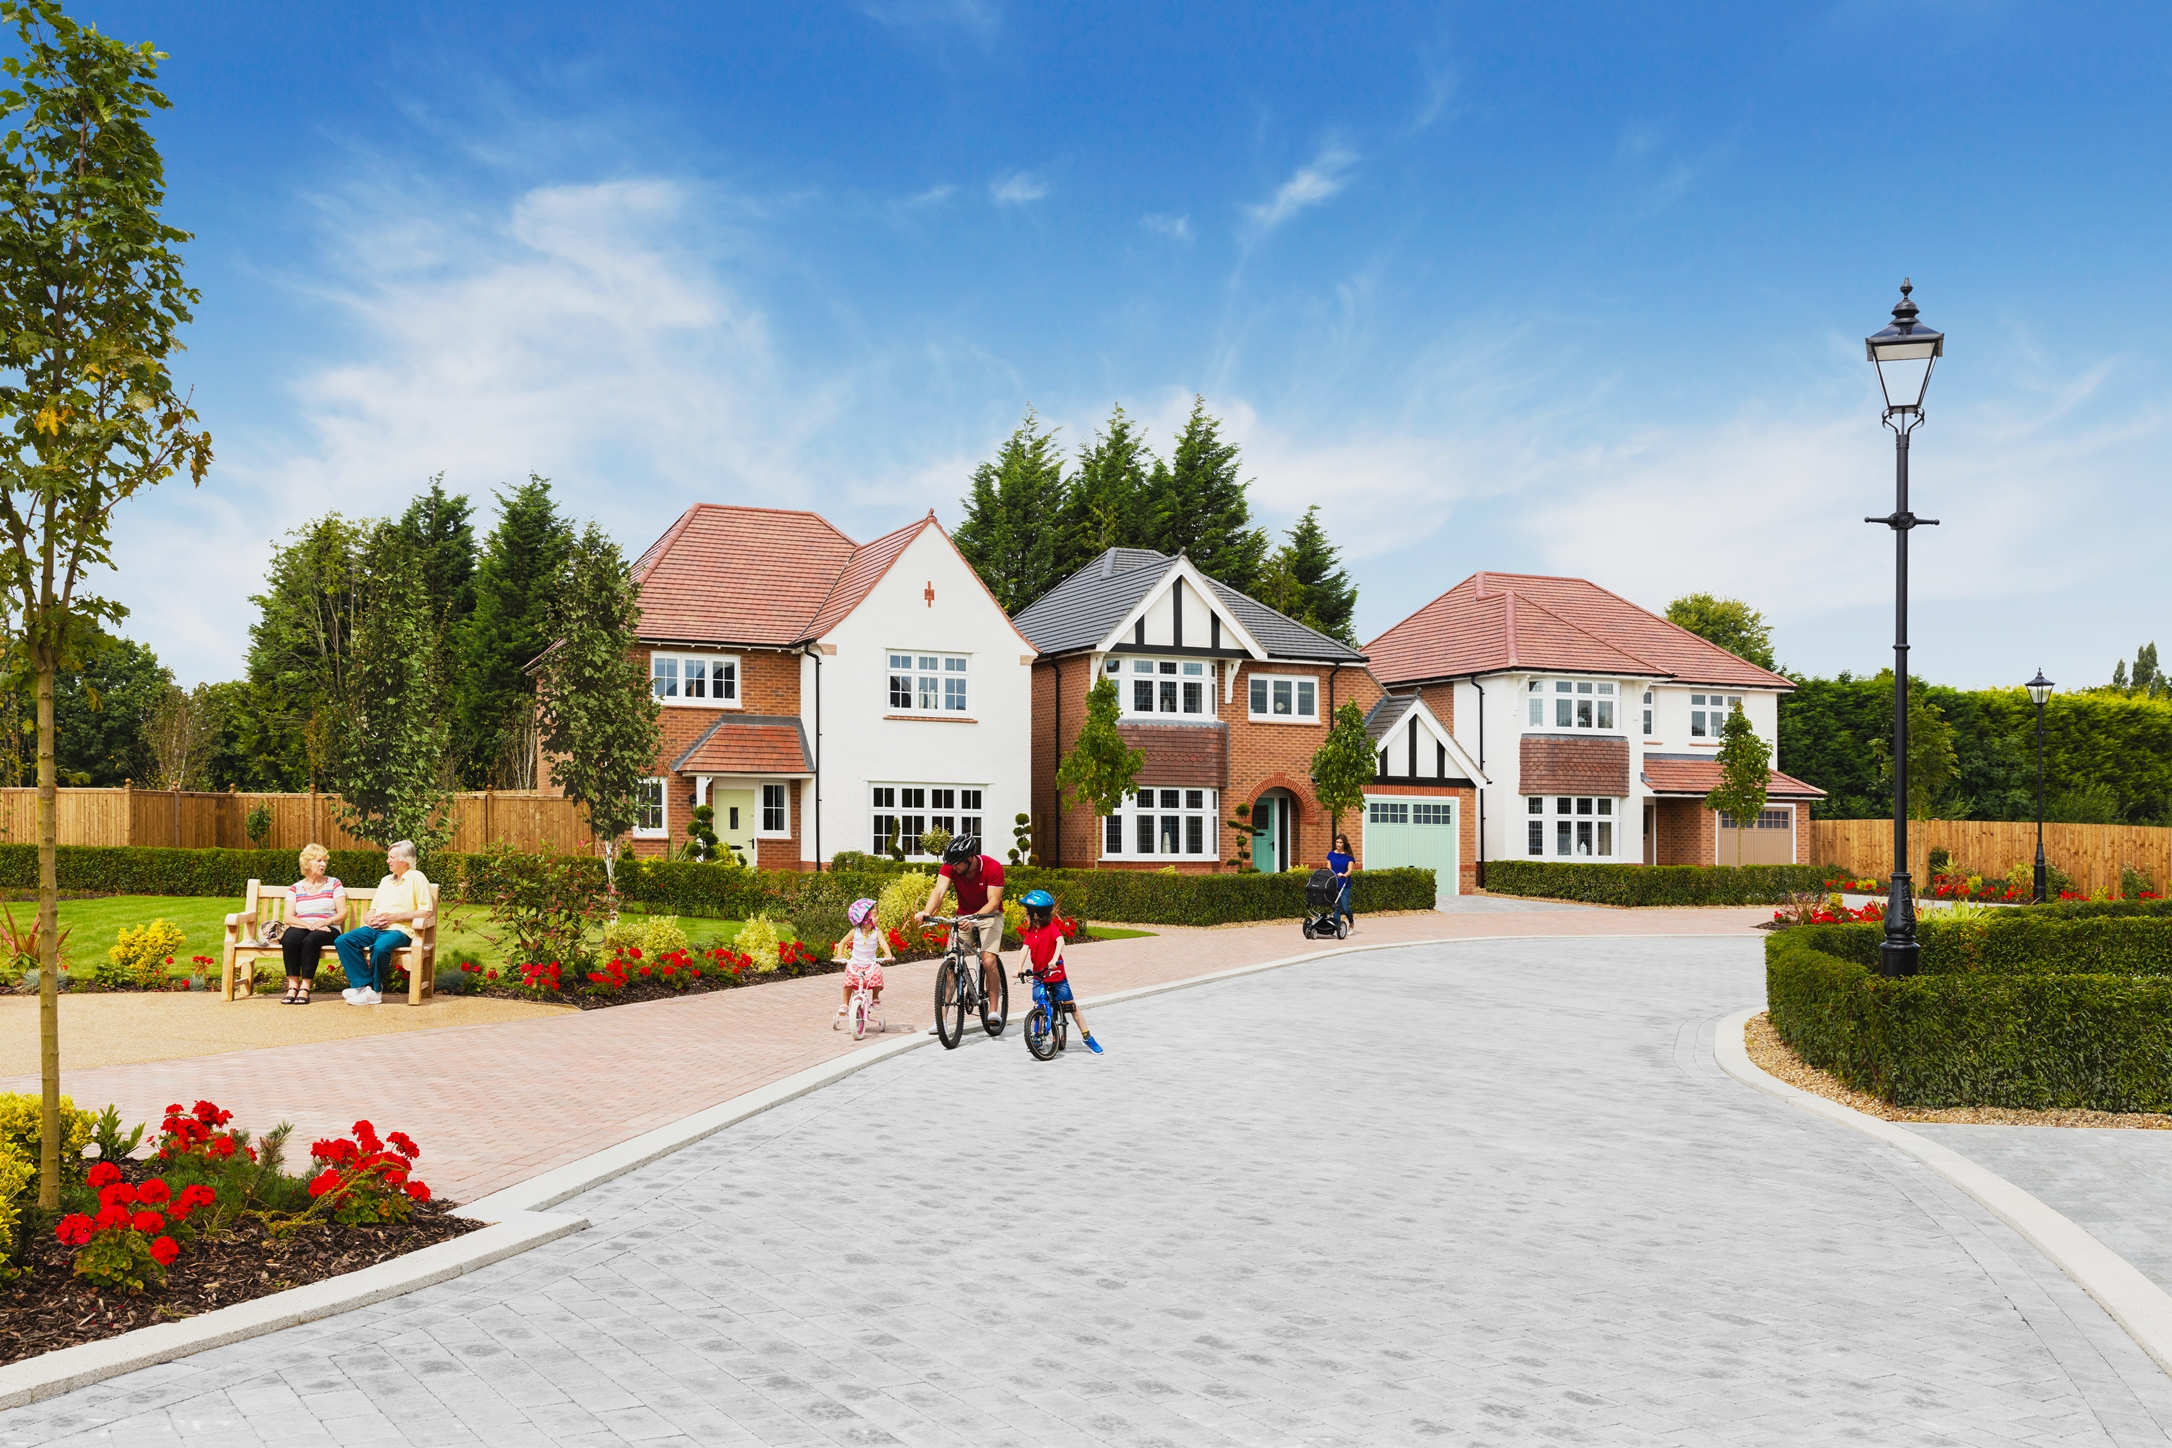 Redrow will be building homes from their popular Heritage Collection in Nantwich